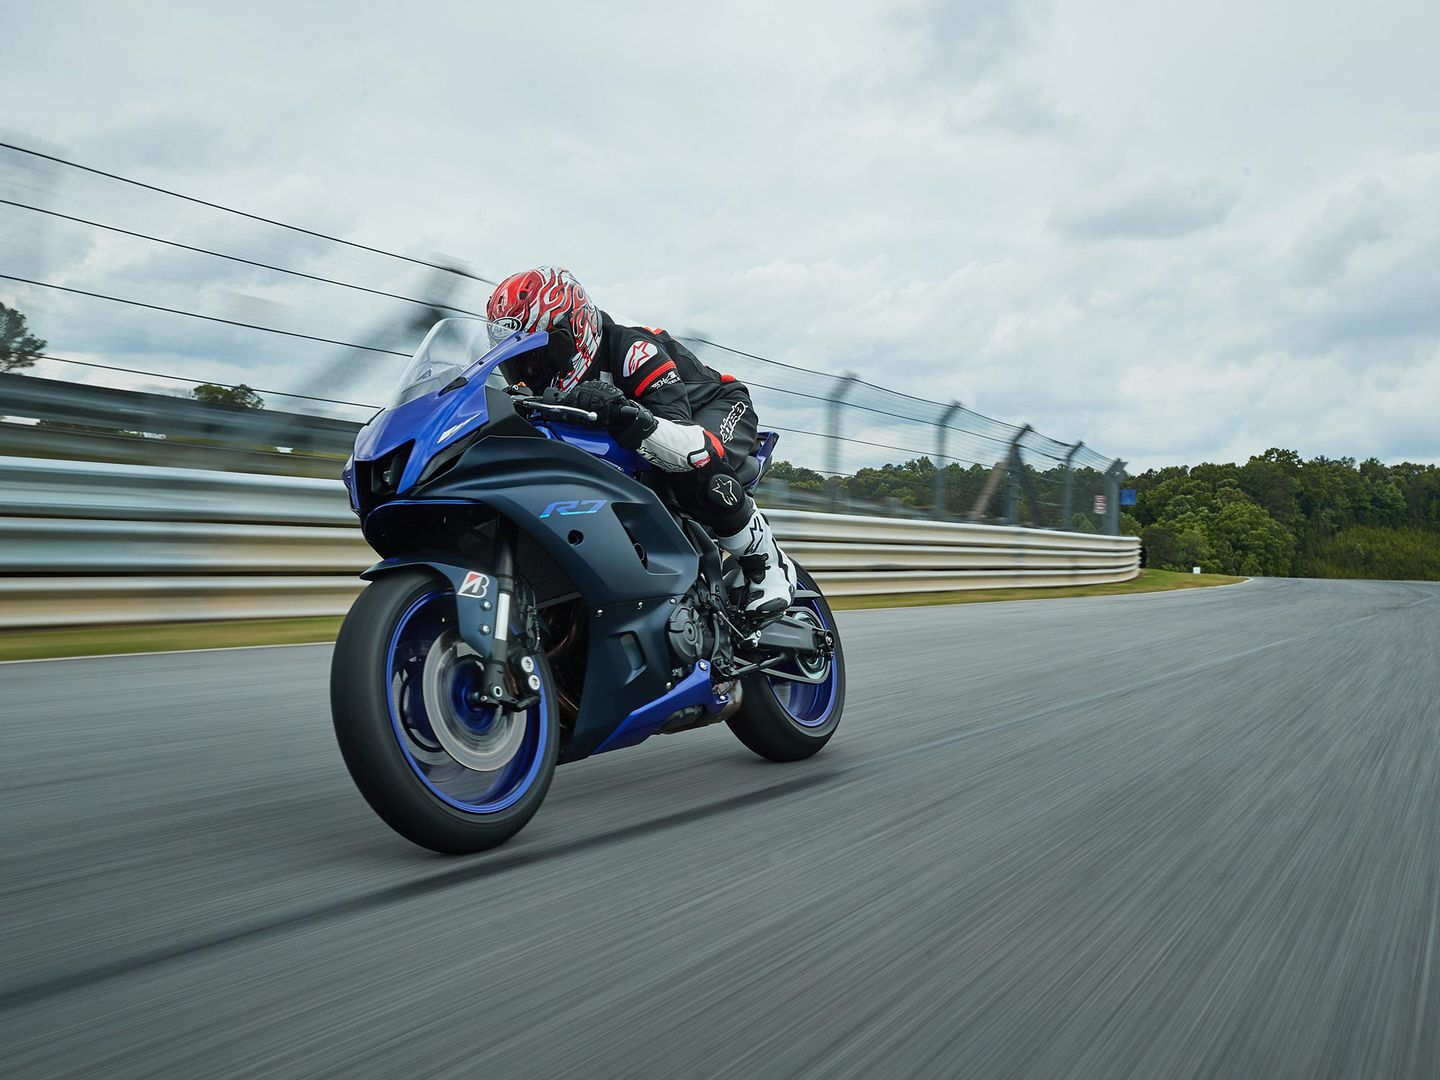 2022 Yamaha YZF-R7 Review – First Ride